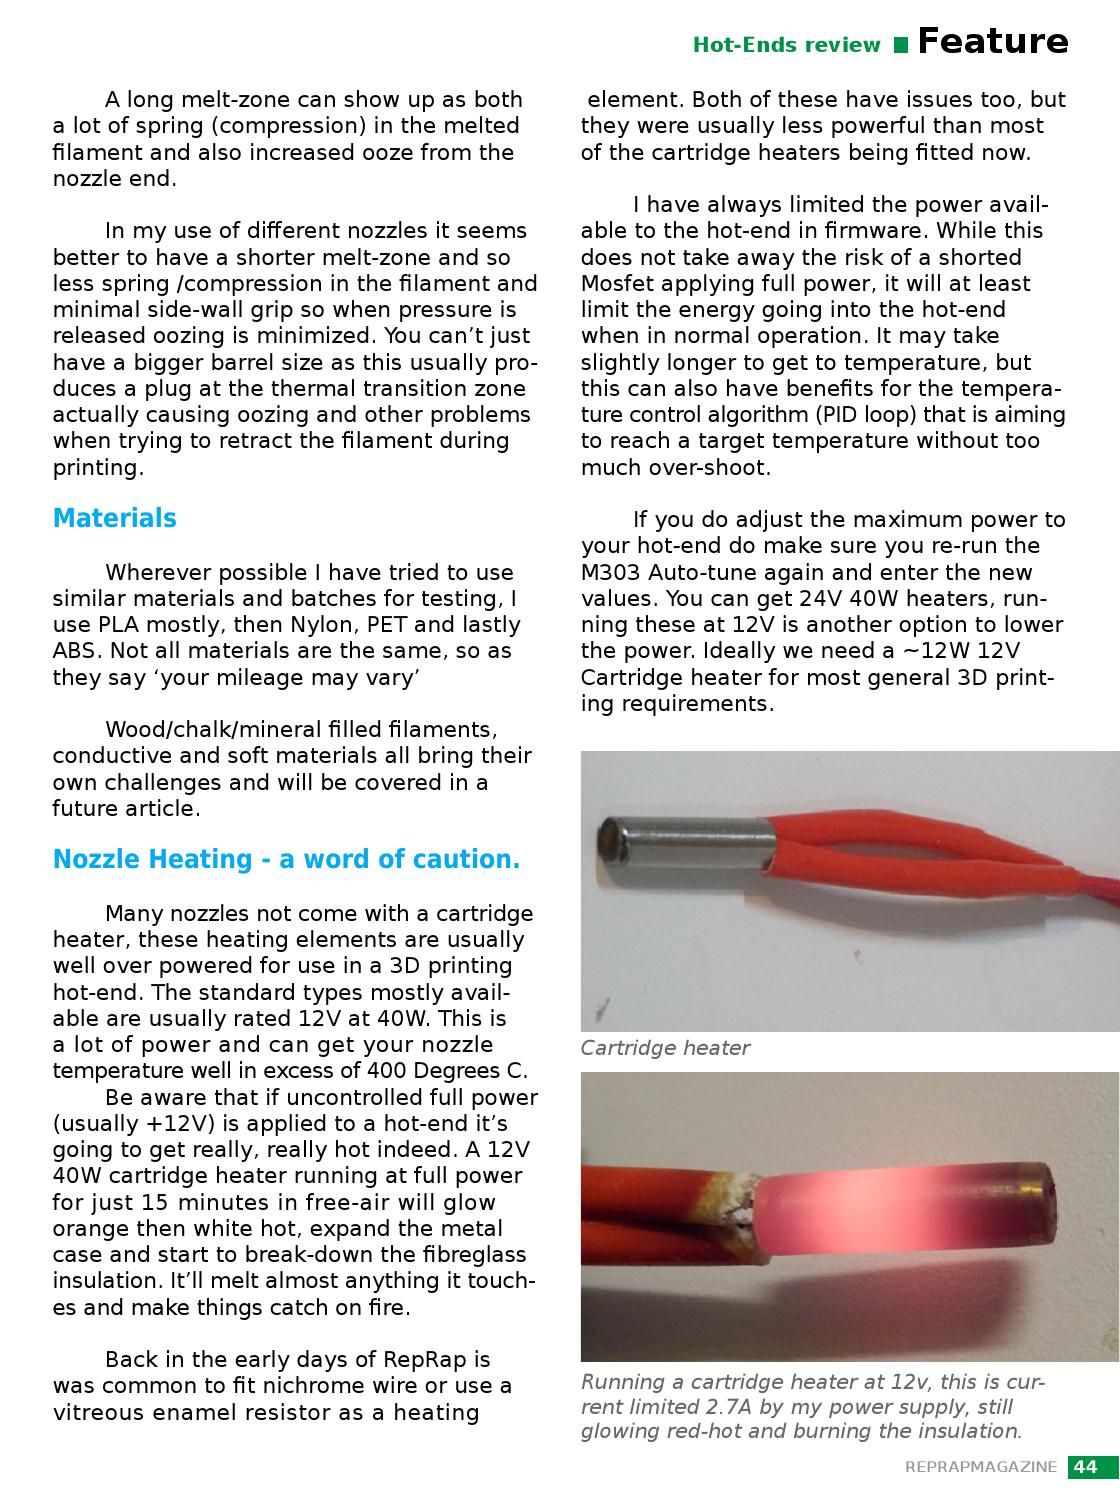 RepRap Magazine Issue 3 by Gary Hodgson - issuu